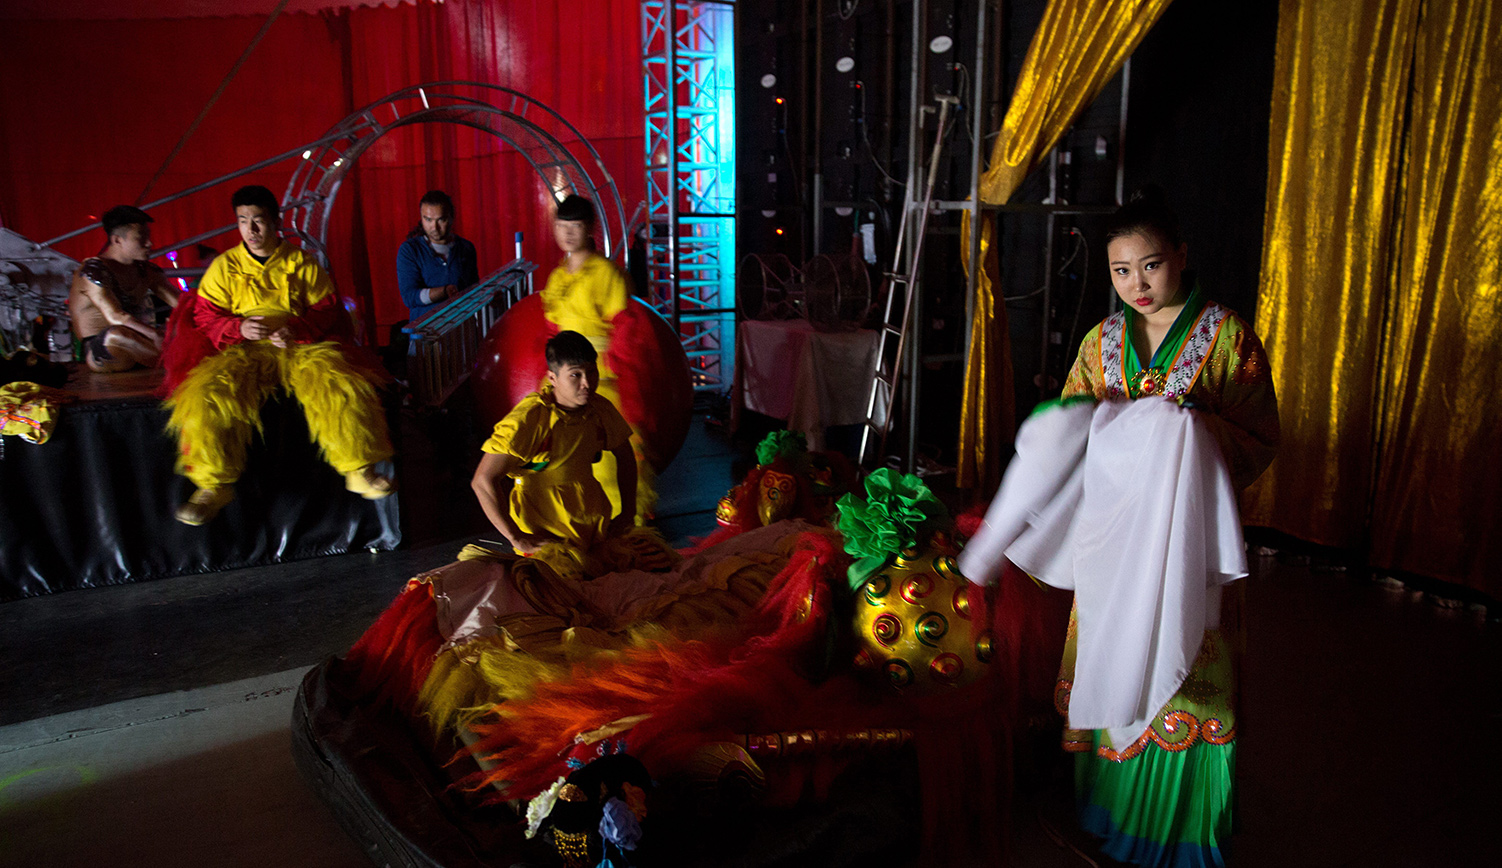 Chinese circus acrobats wait backstage prior to their performance in the Israeli city of Haifa on March 29, 2016. MENAHEM KAHANA/AFP/Getty Images.